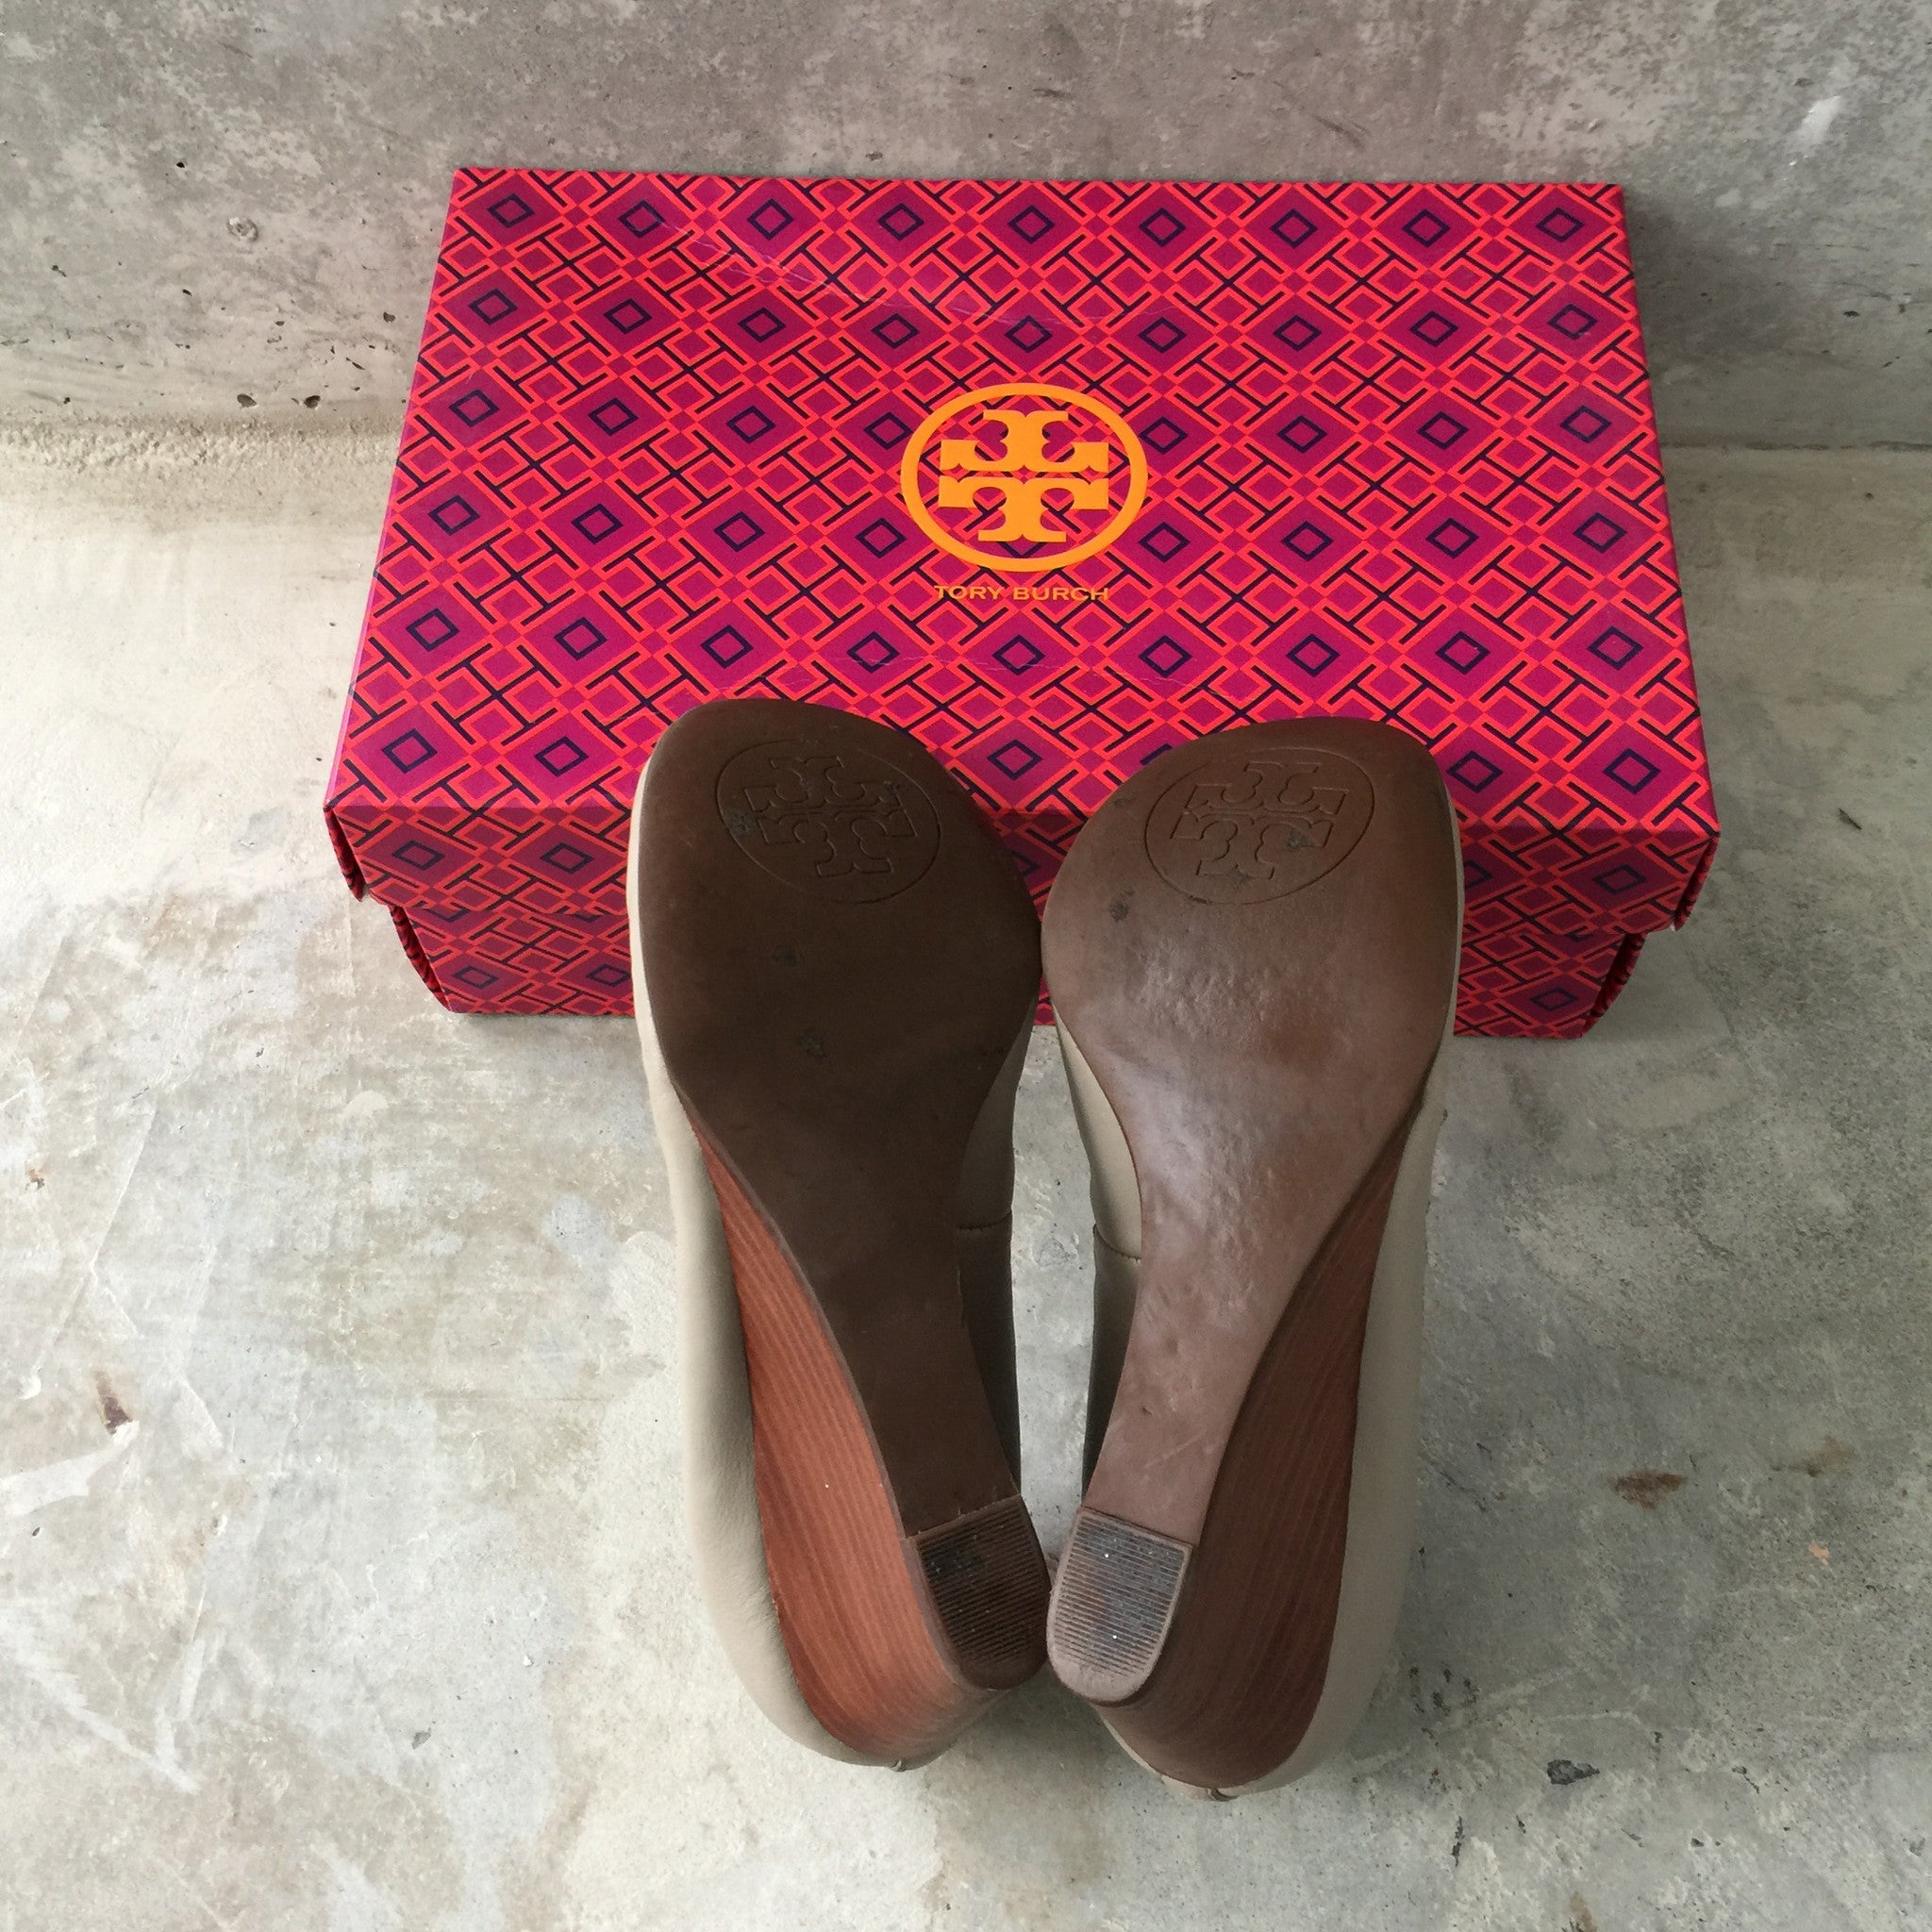 Authentic TORY BURCH Wedges Size 5